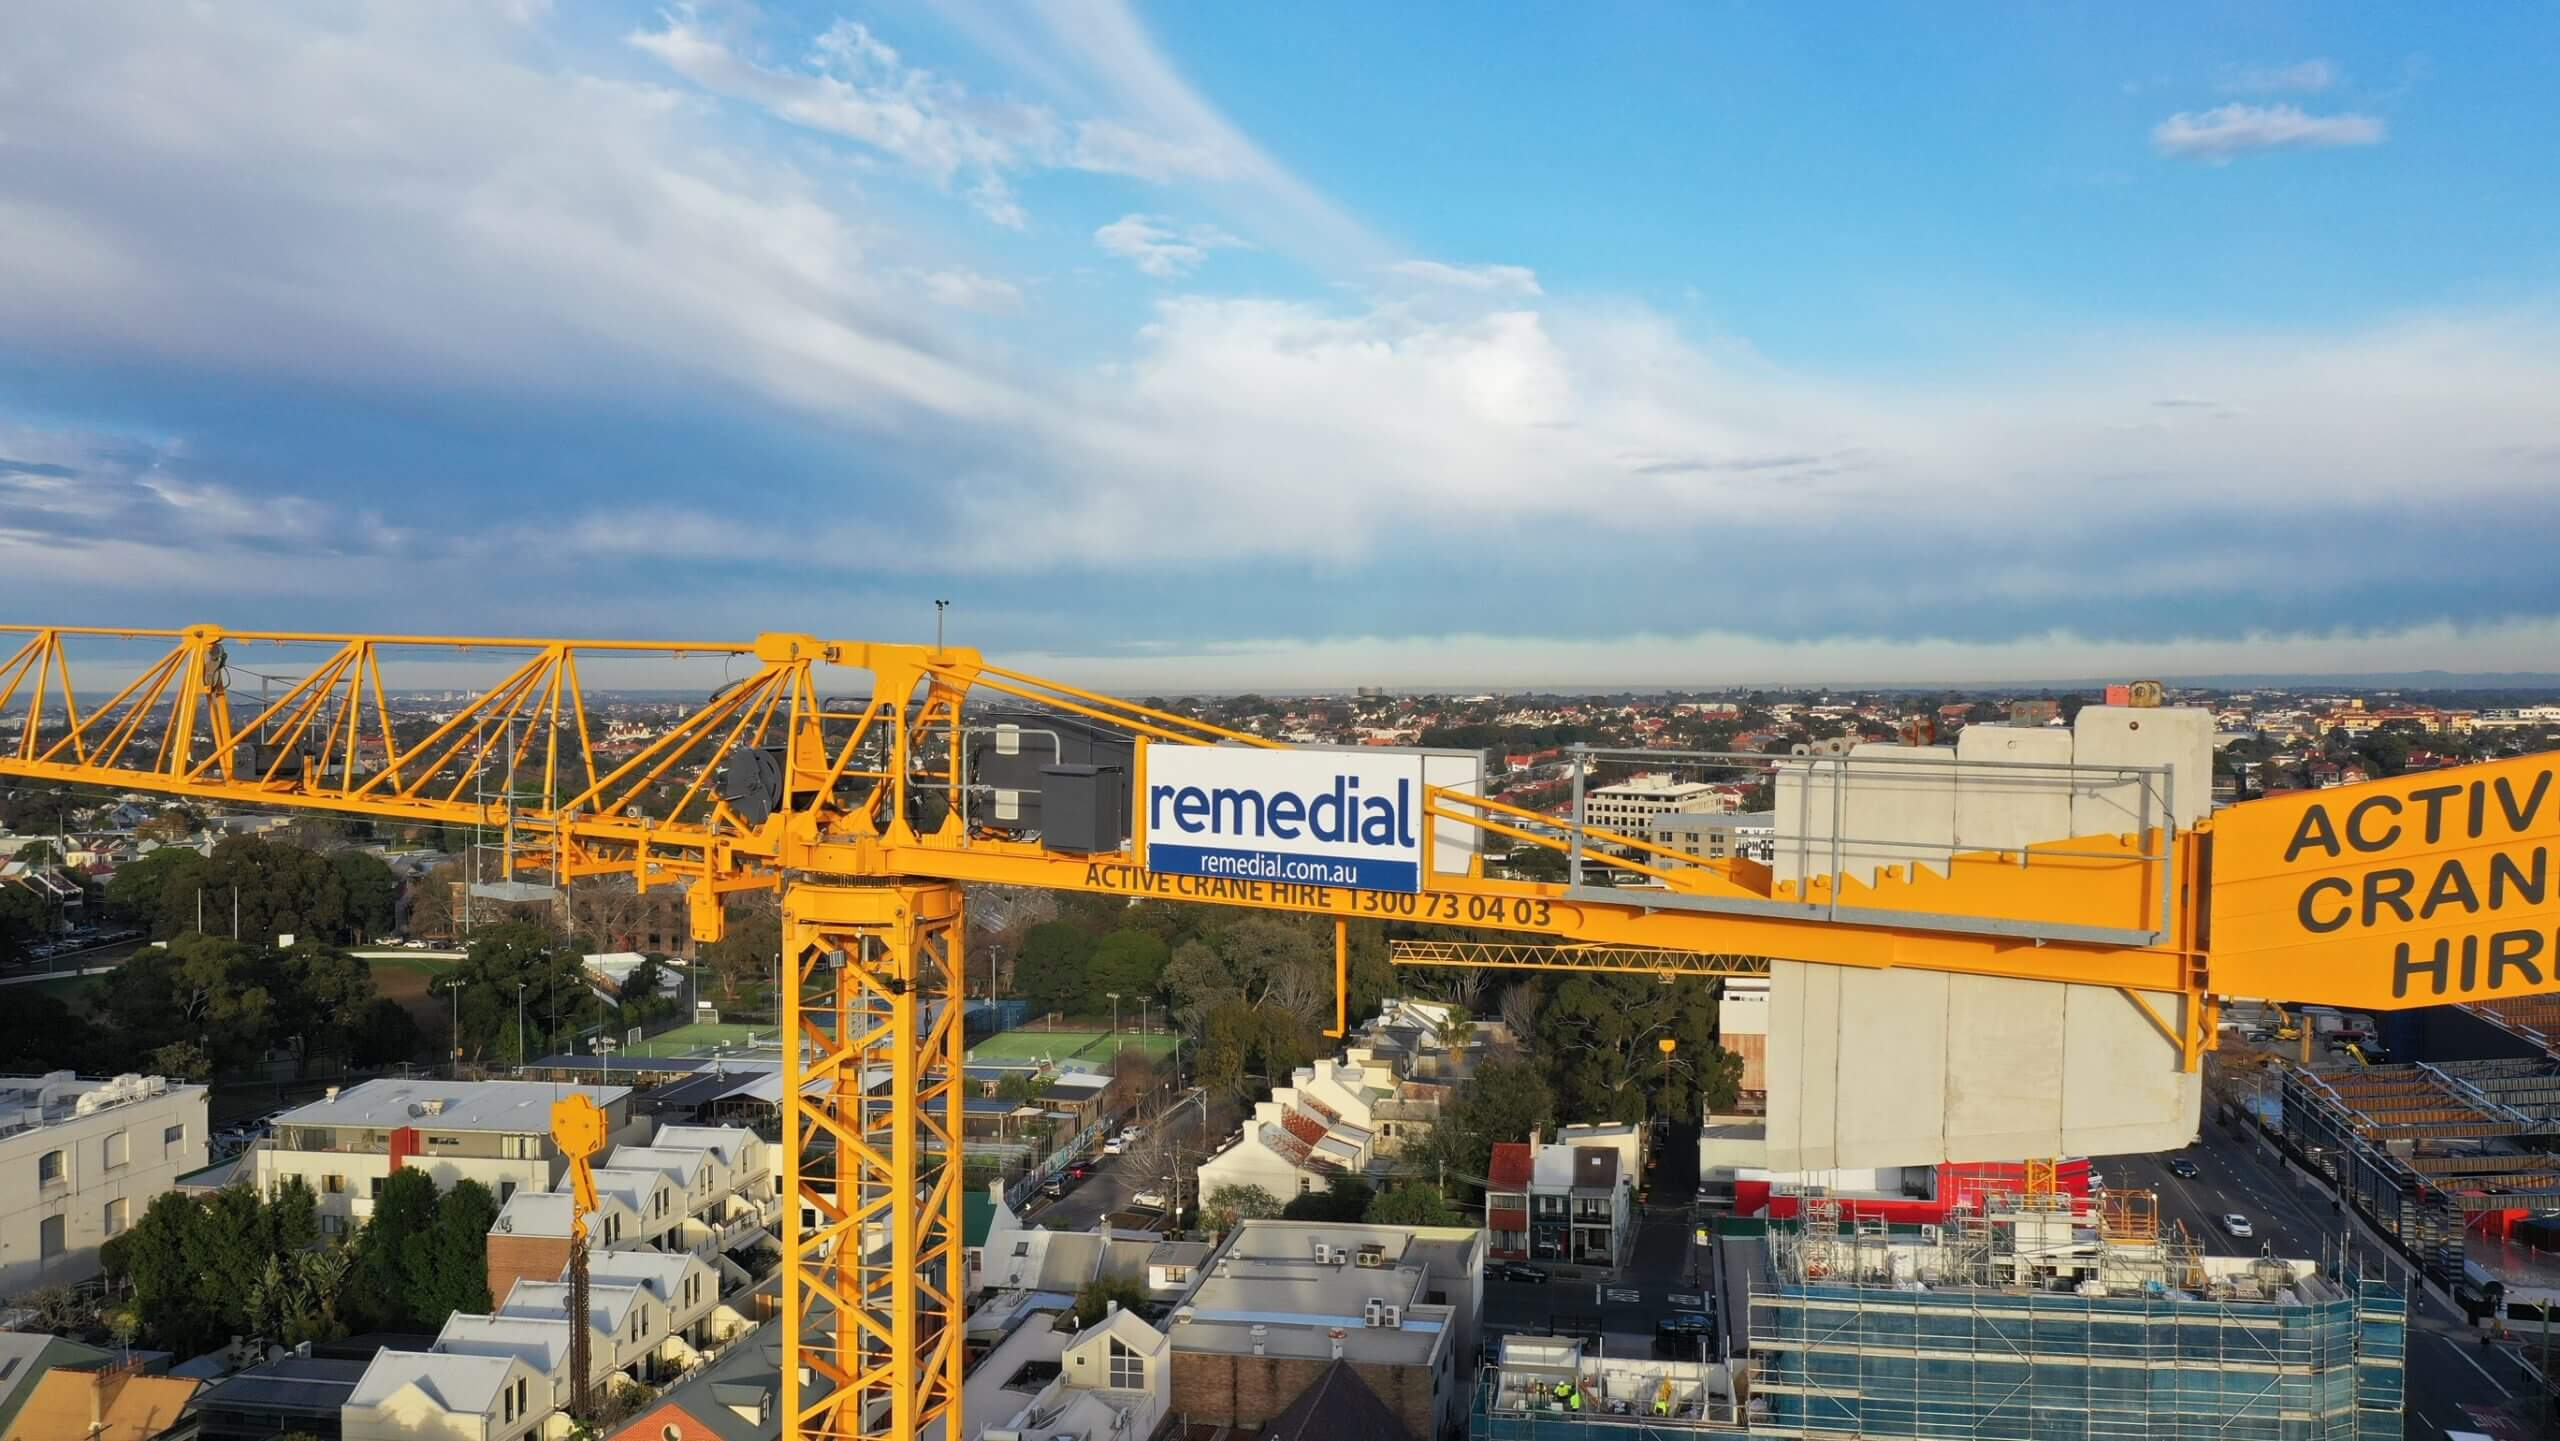 Crane - Building Repair And Maintenance - Remedial Building Services